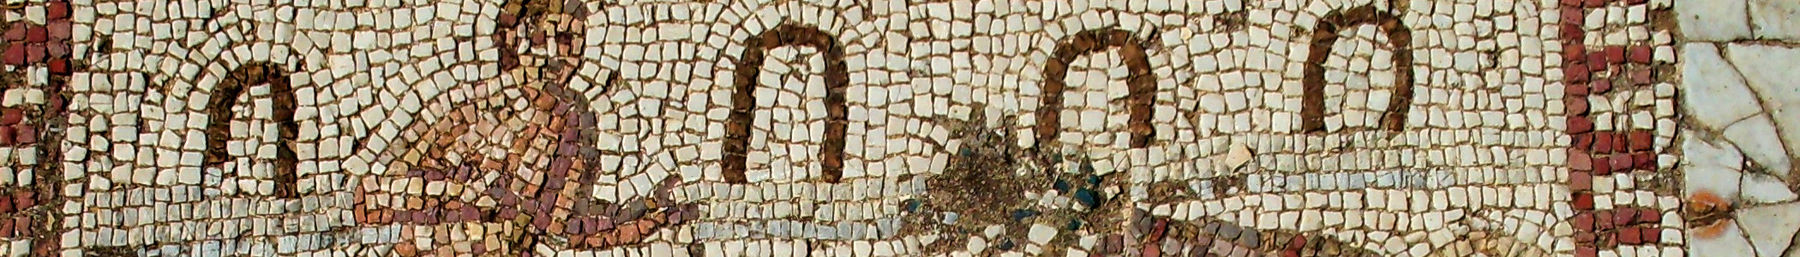 Tunisia banner Roman mosaic at Carthage.jpg